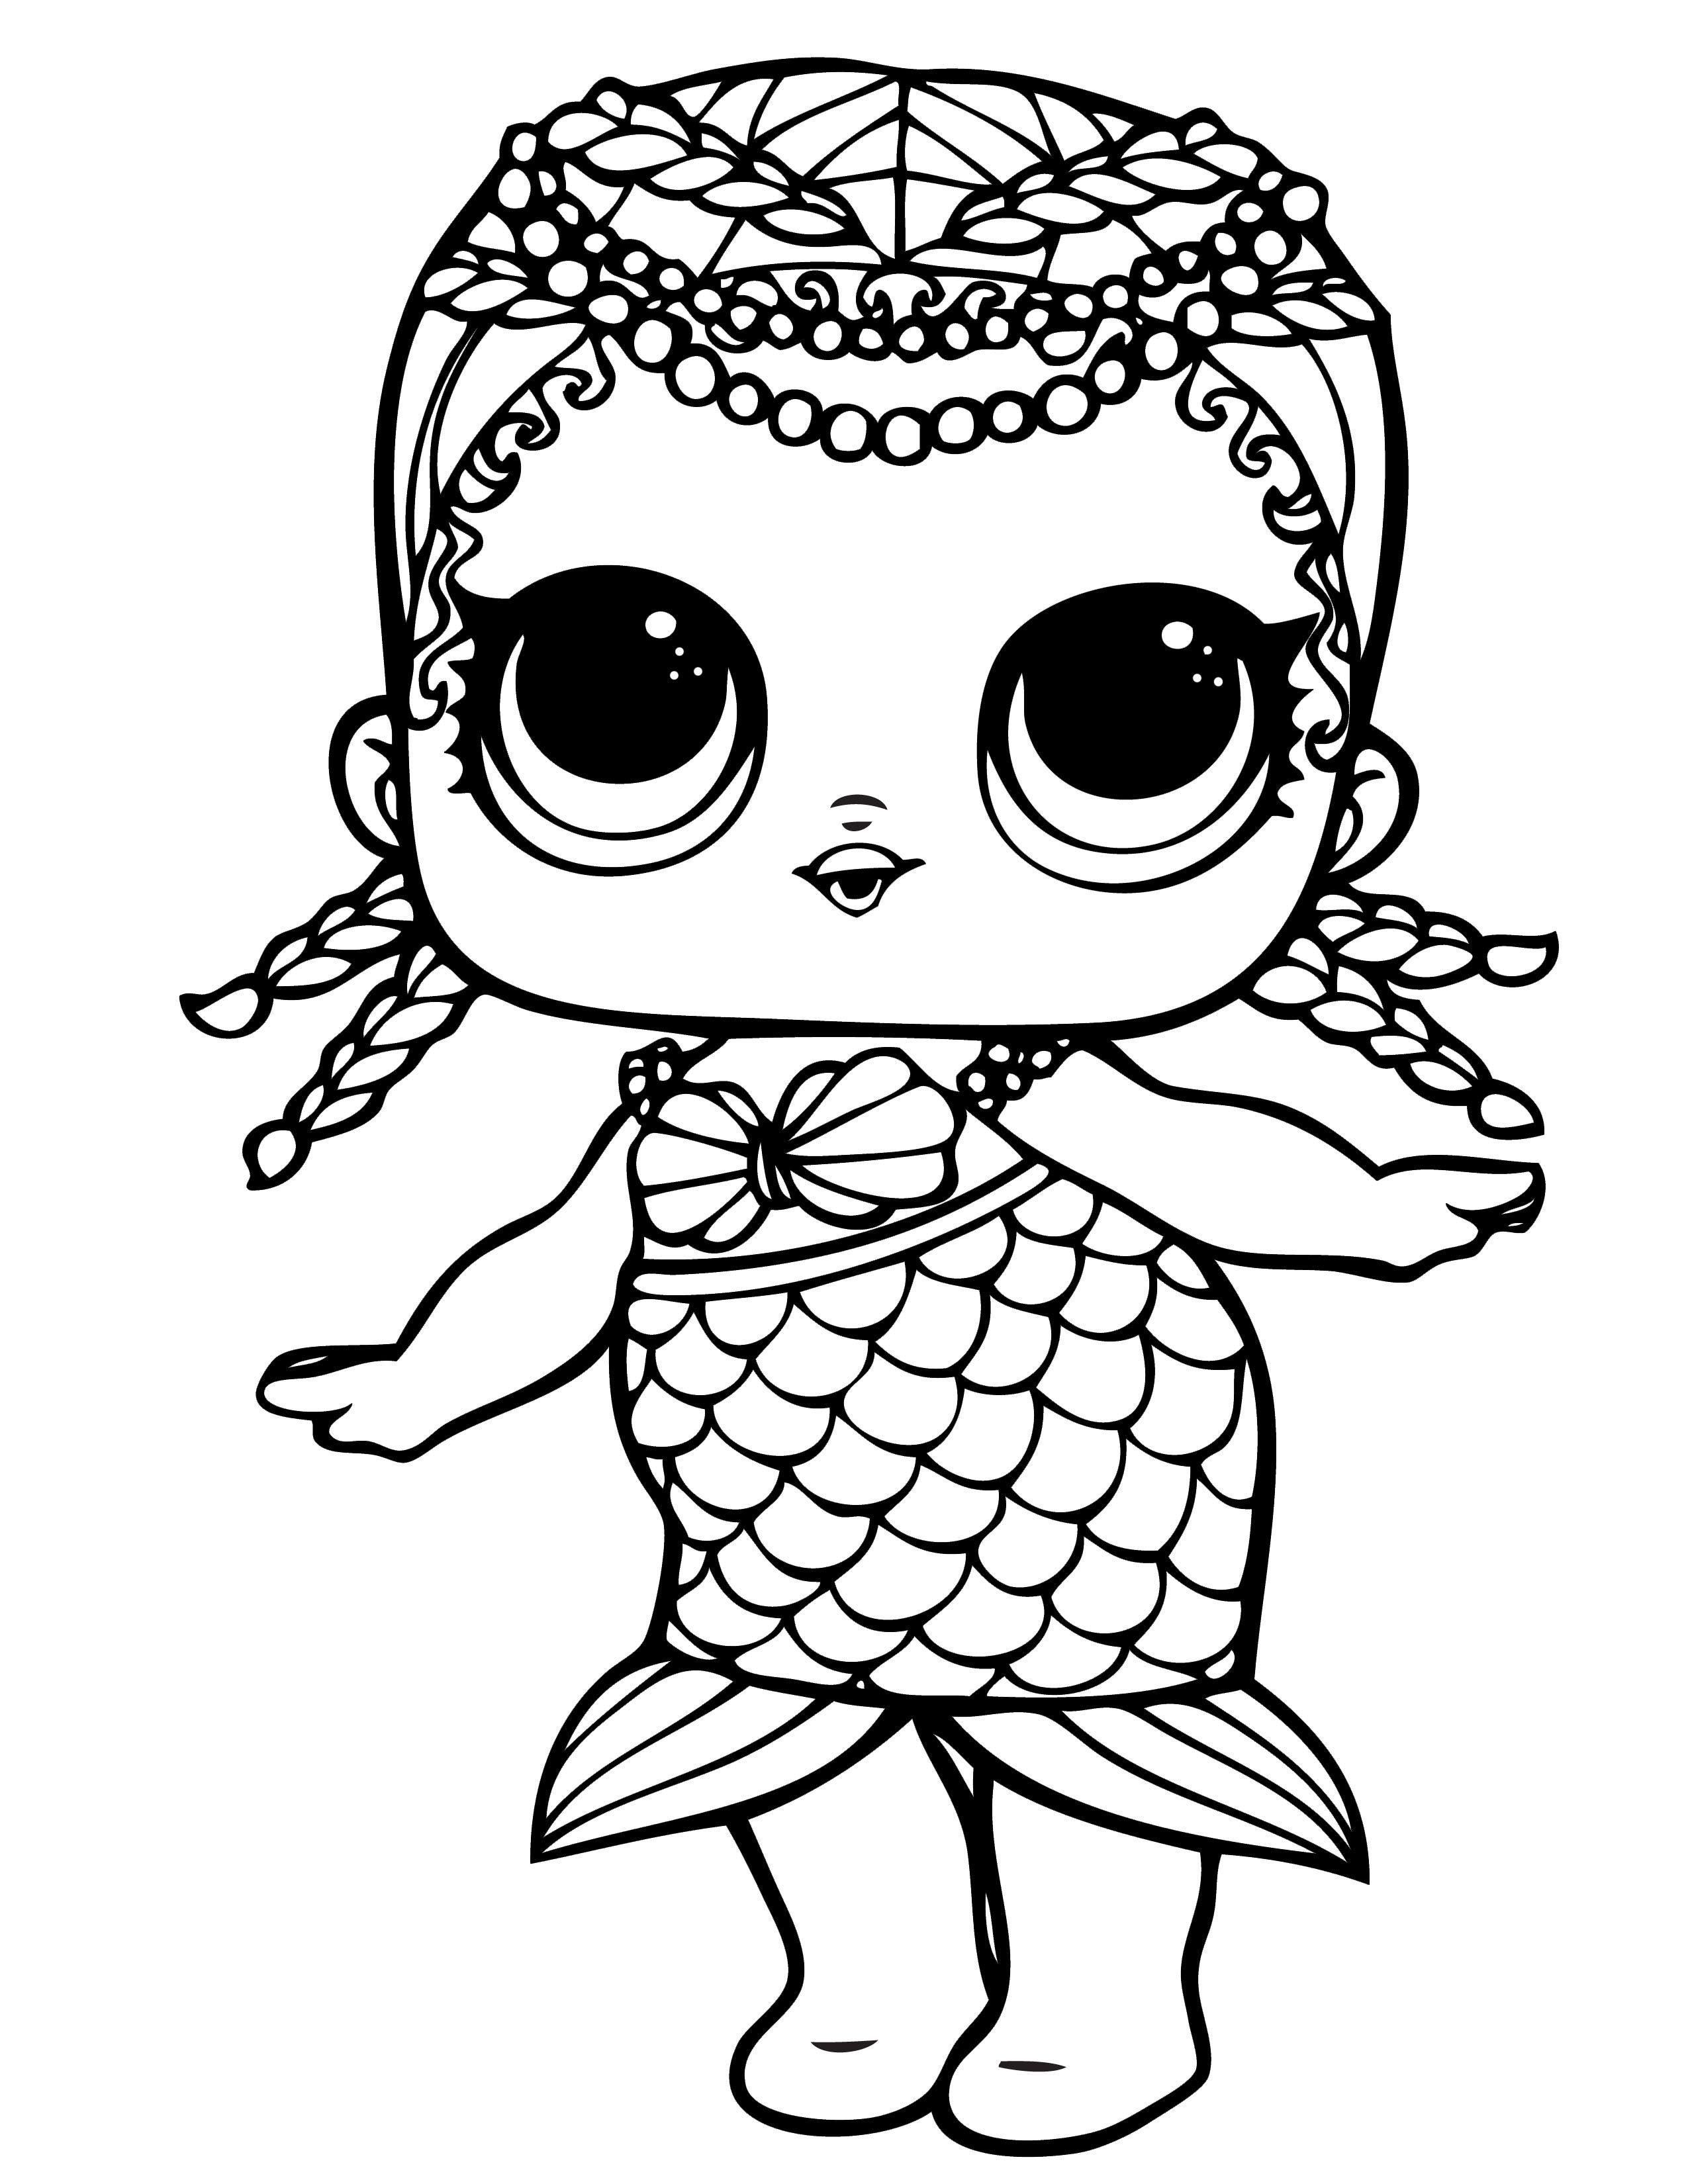 coloring sheets lol lol surprise dolls coloring pages print them for free sheets coloring lol 1 3